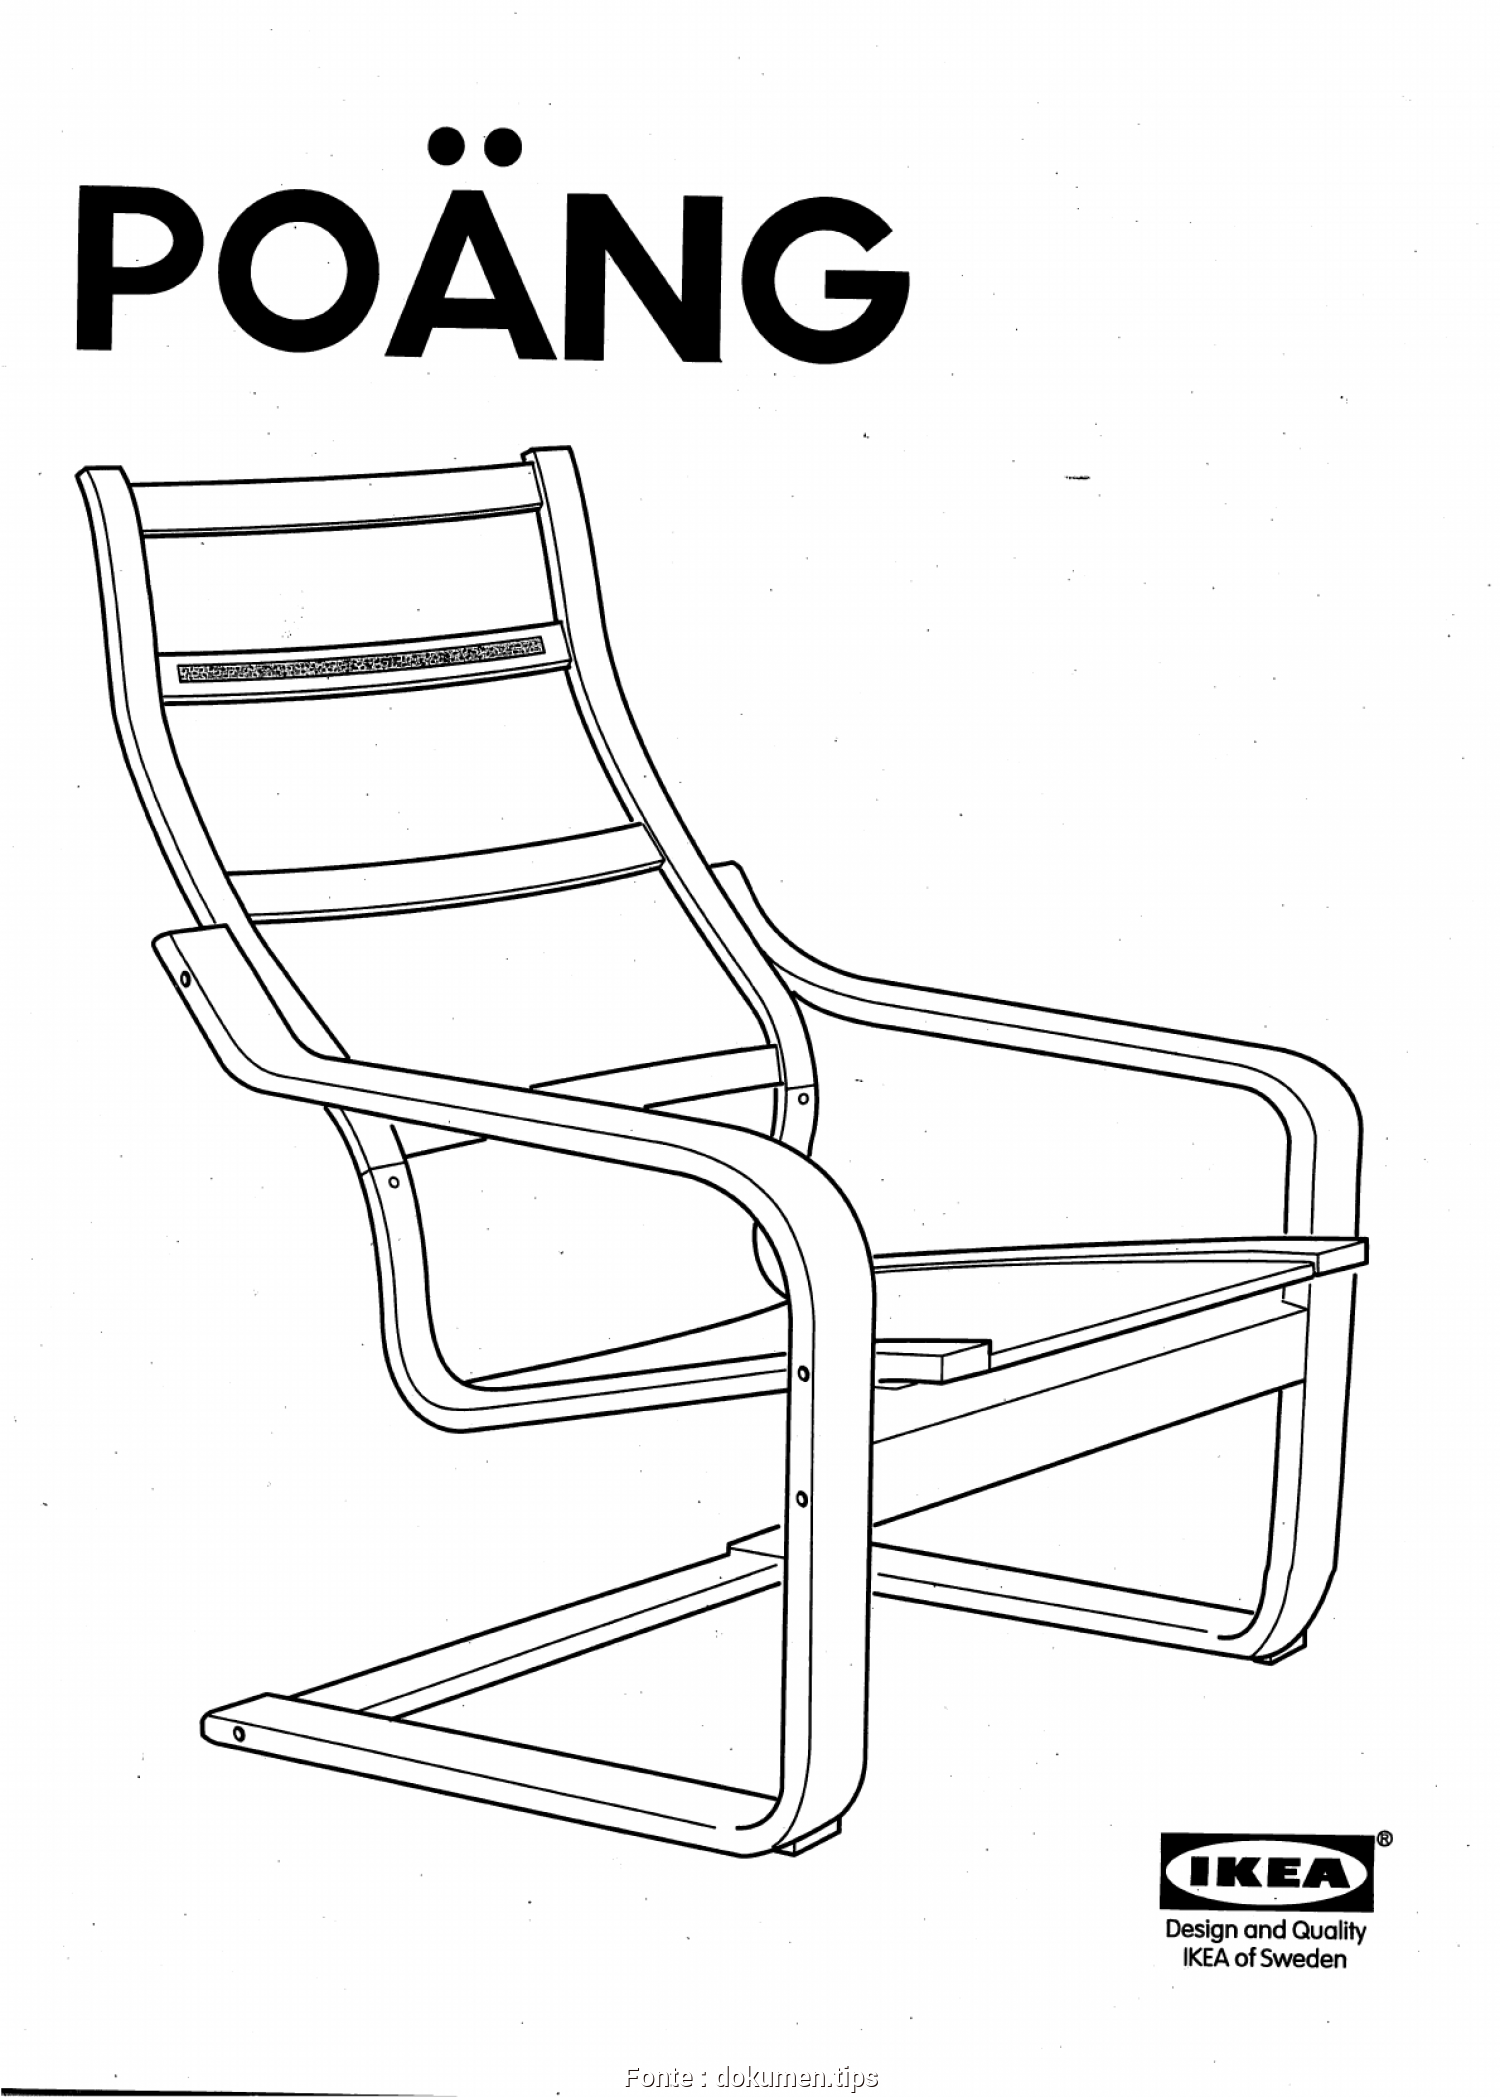 Beddinge Ikea Manual, Deale Ikea Poang Chair Assembly Instructions